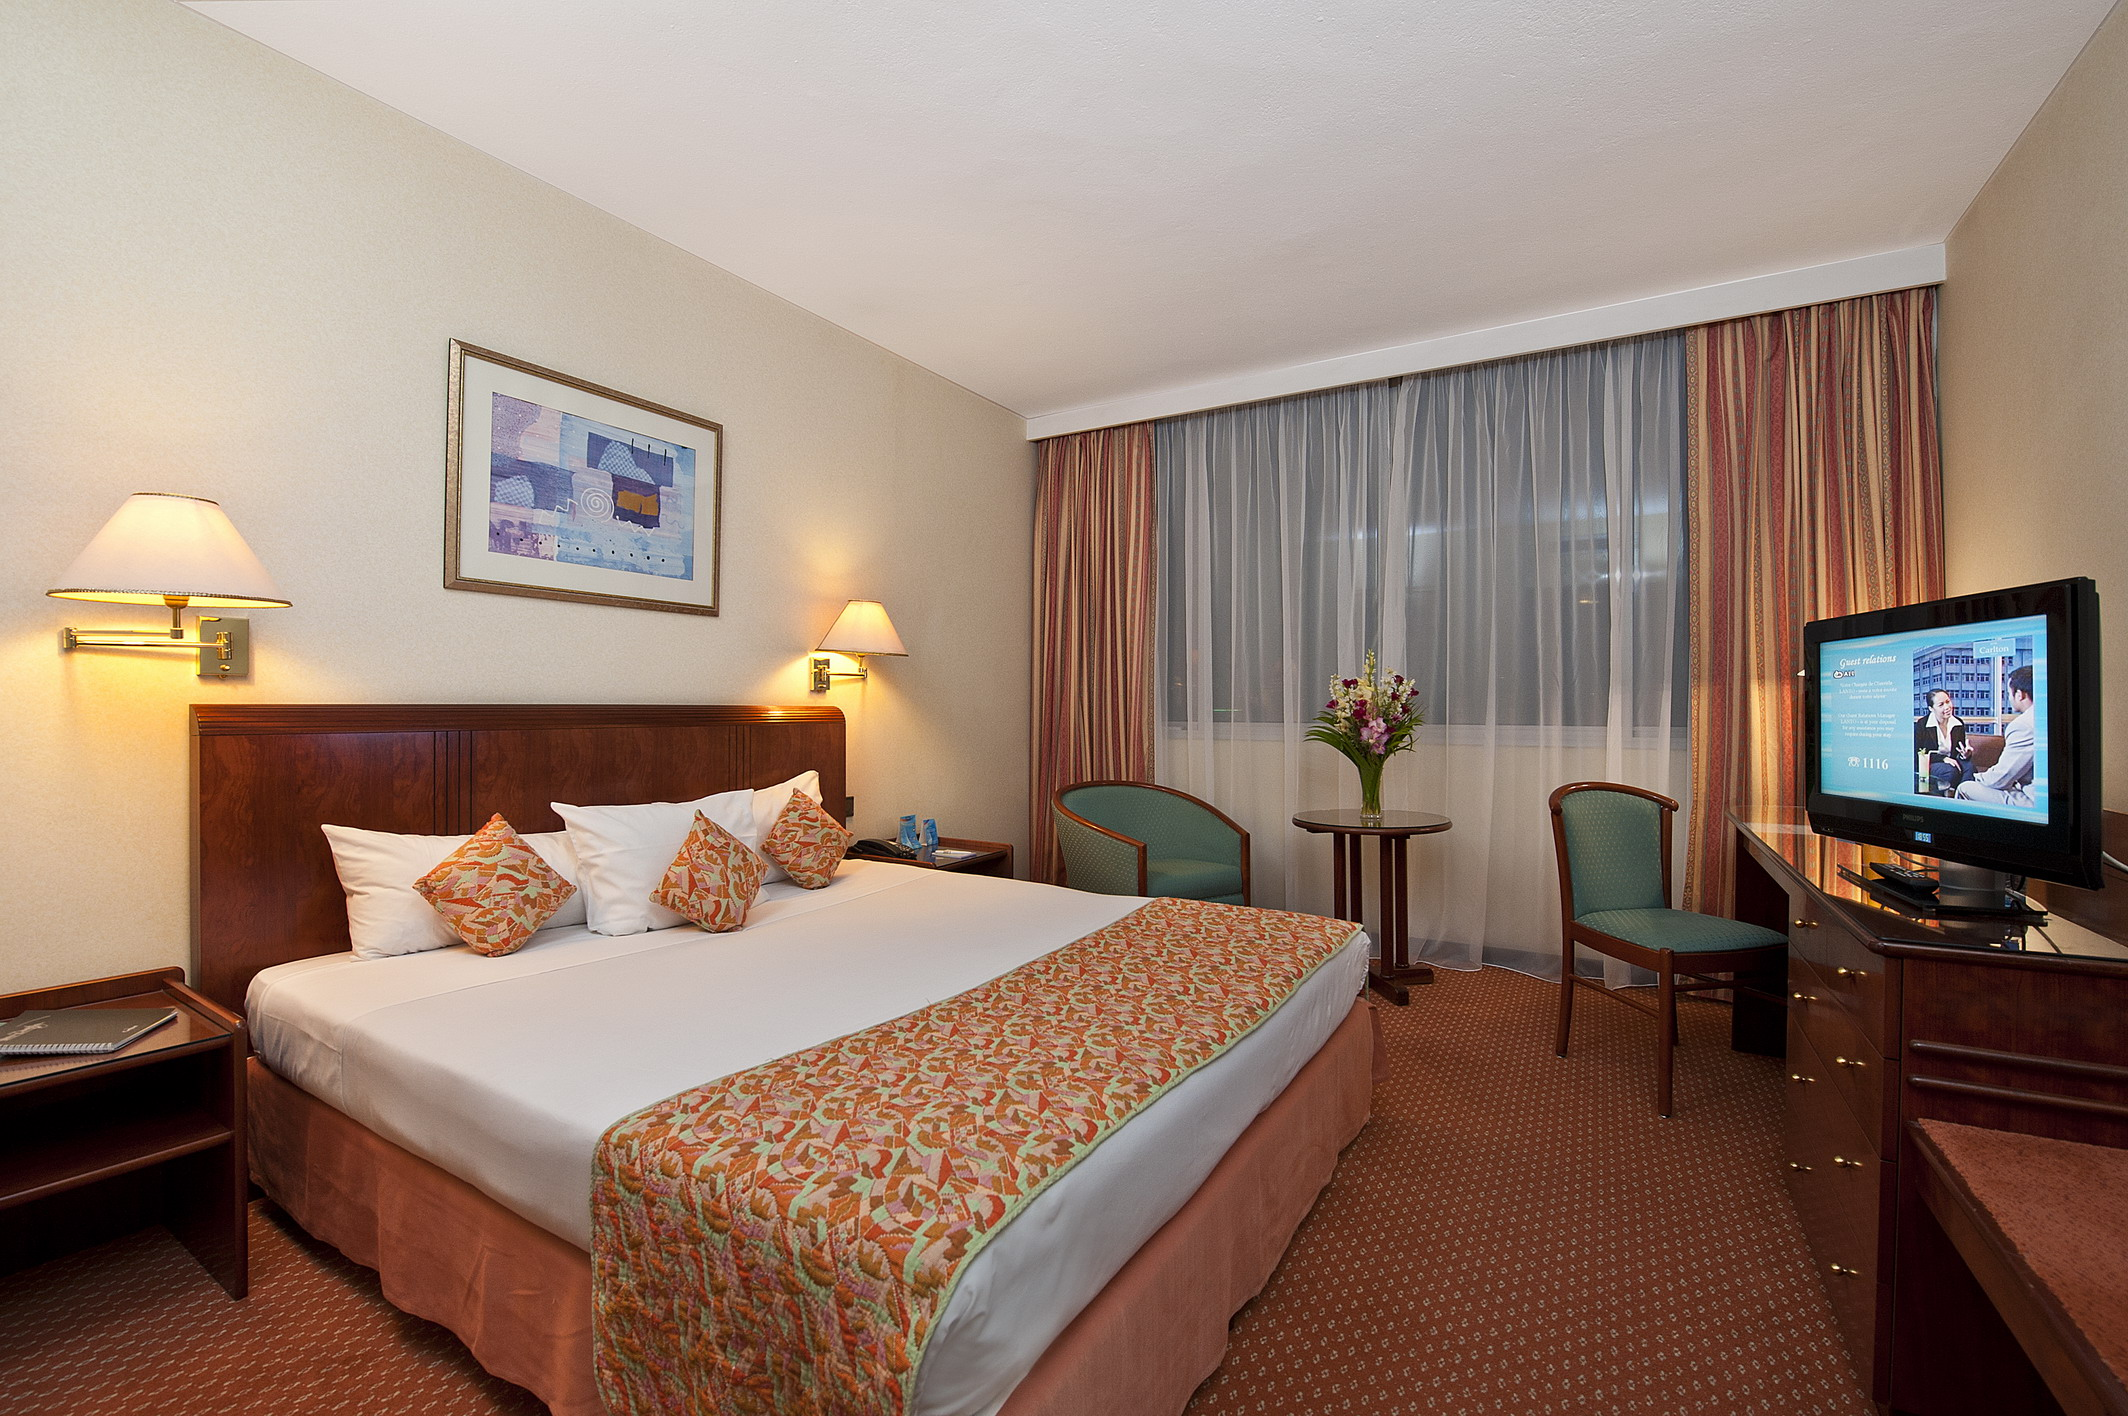 Photo from hotel Al Jaberiya Suites 1 Hotel